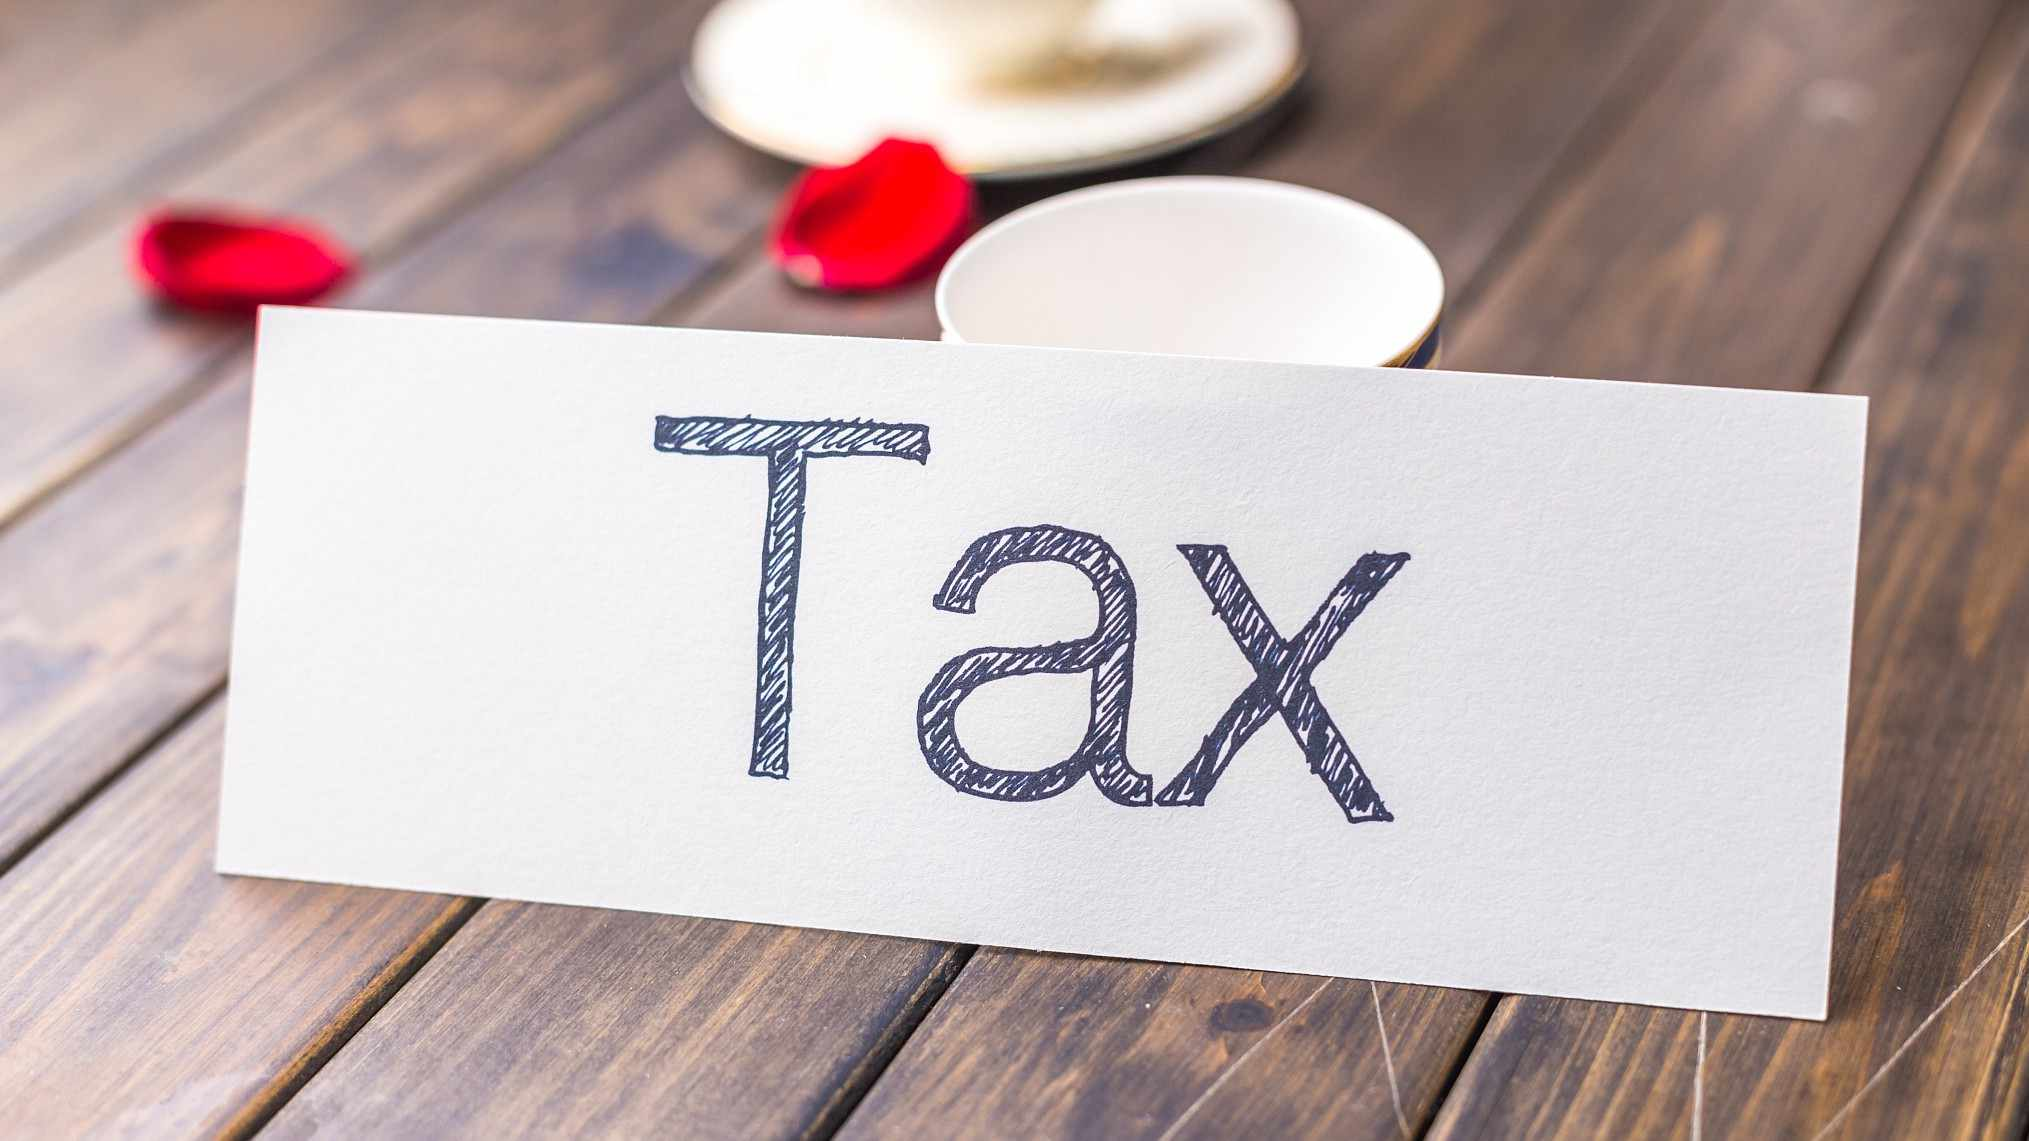 China makes headway in crackdown on tax-related crimes